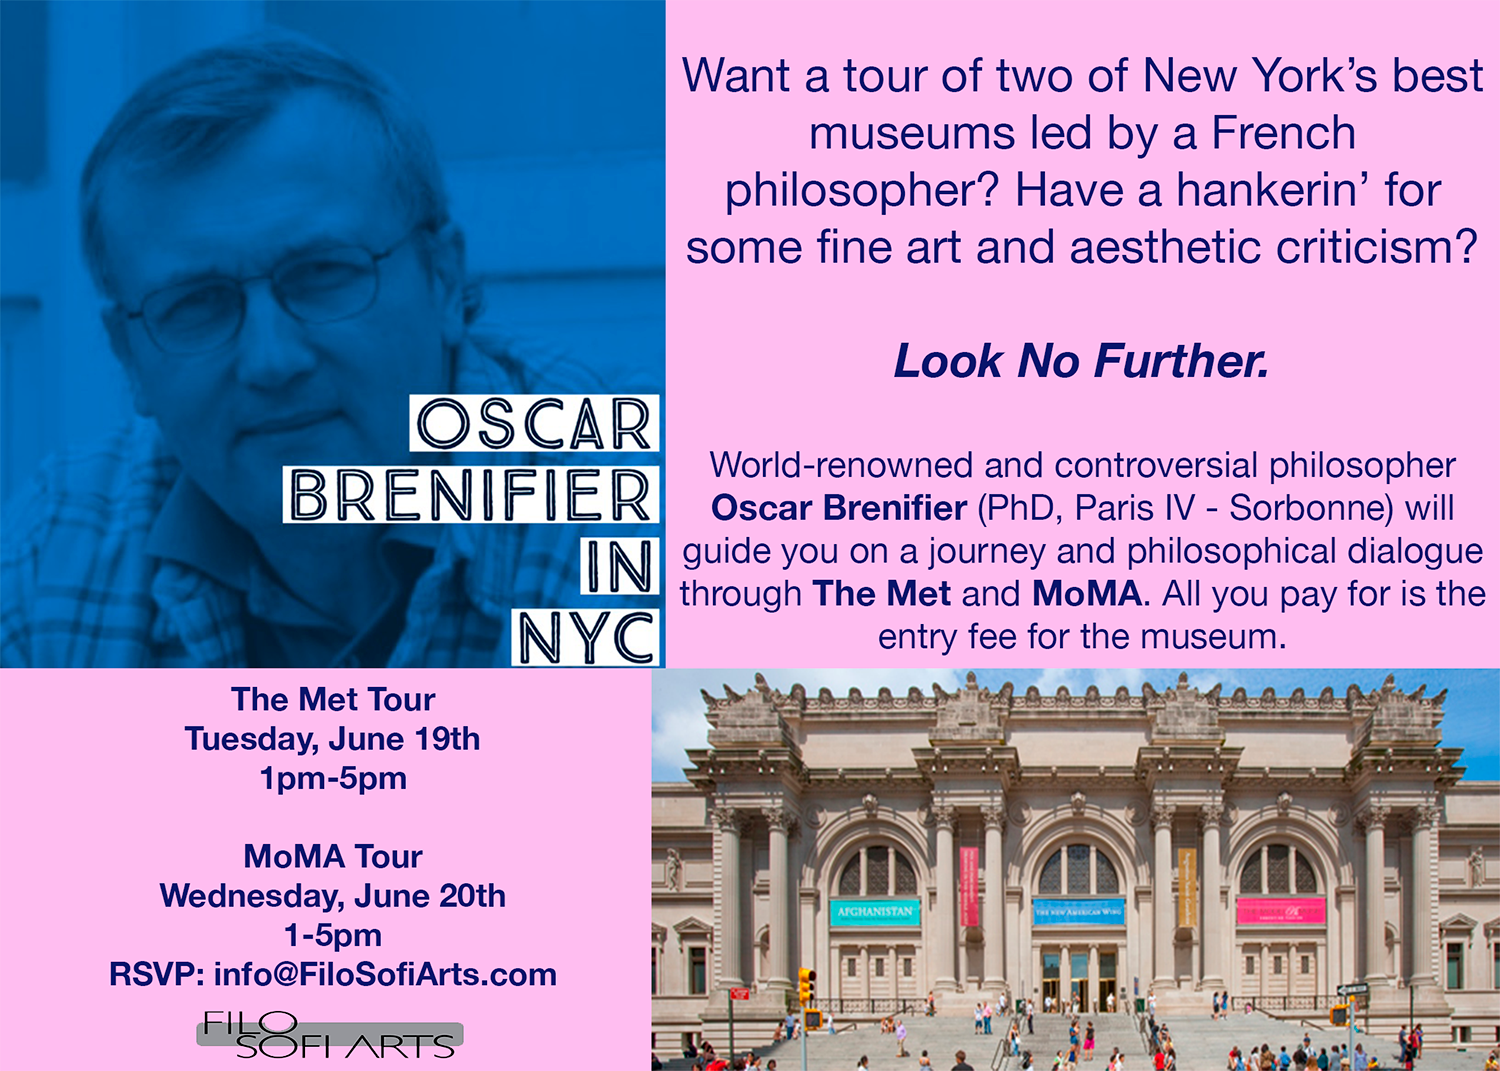 Philosophical dialogue at MoMA guided by world renowned philosopher Oscar Brenifier